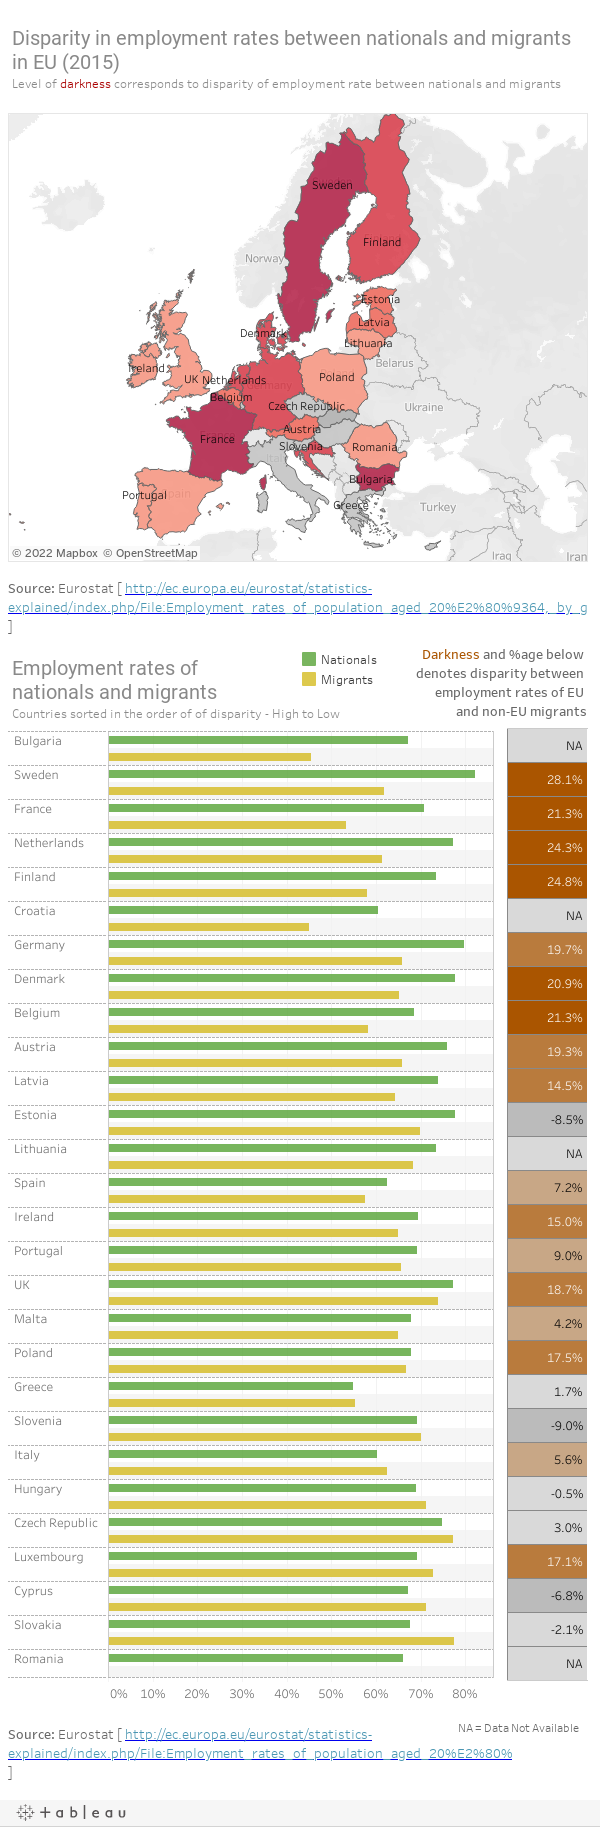 Employment rates in Europe 2015